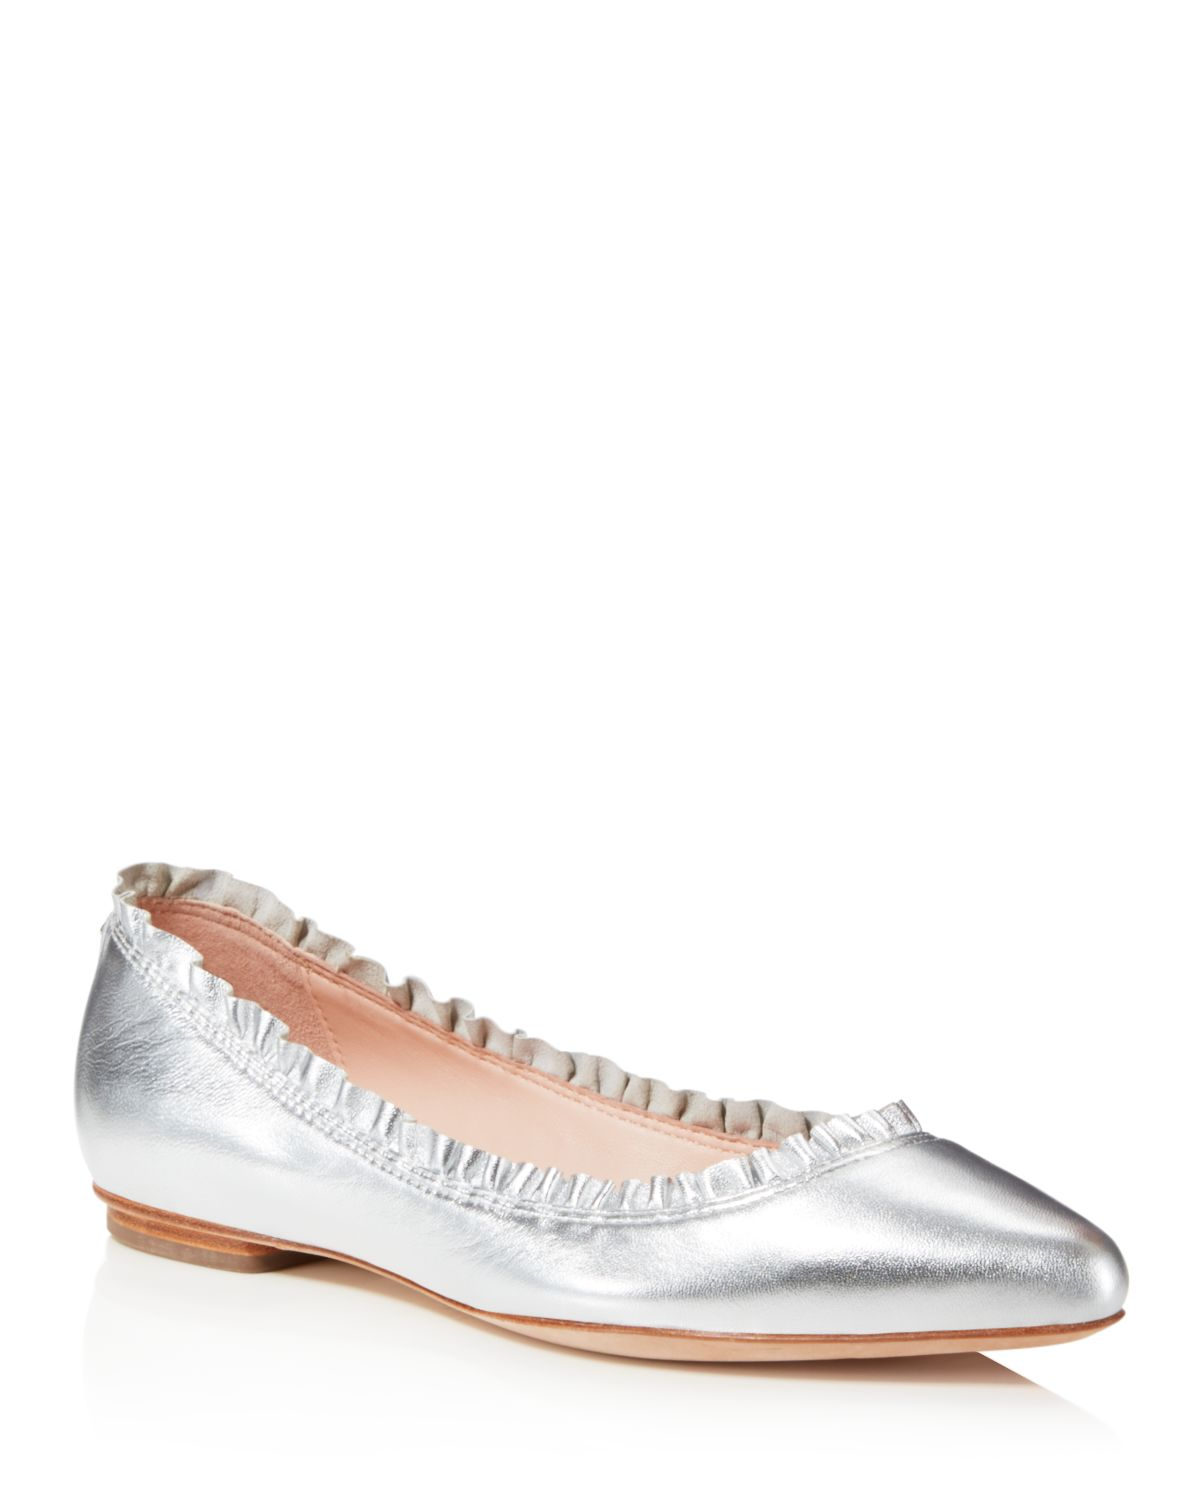 Kate Spade New York Women's Nicole Leather Flats